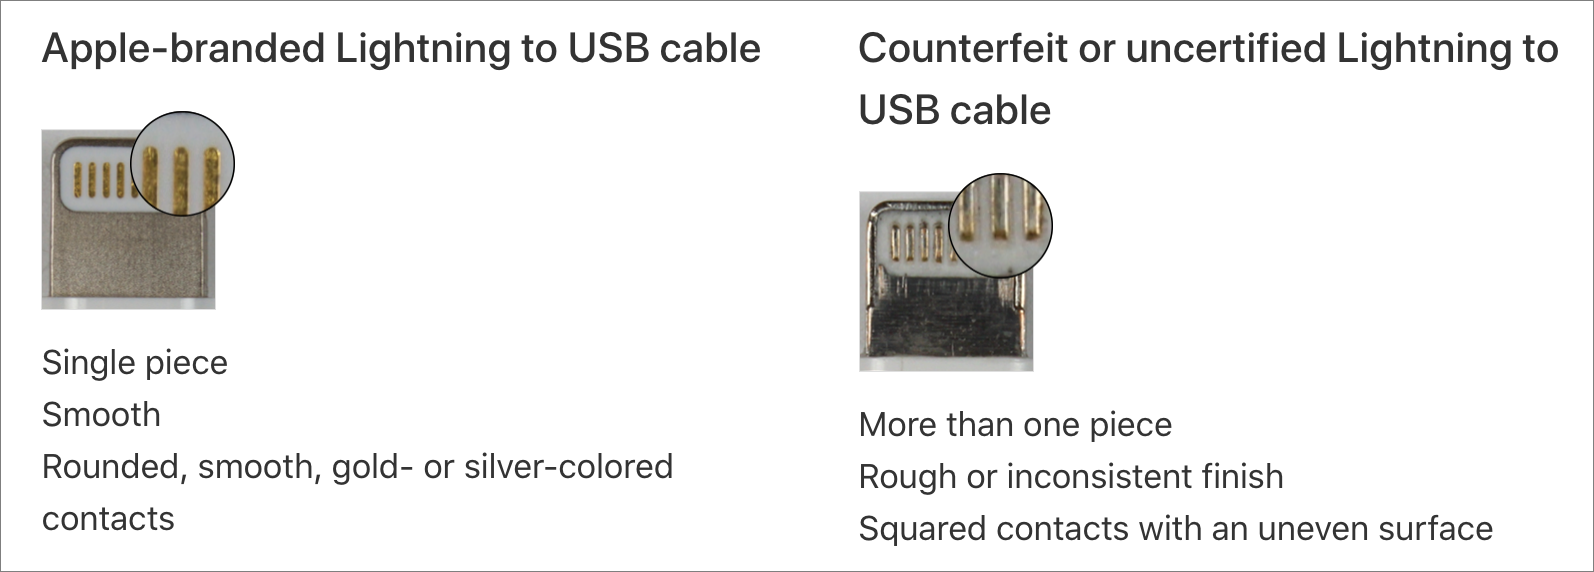 counterfeit-cables.png